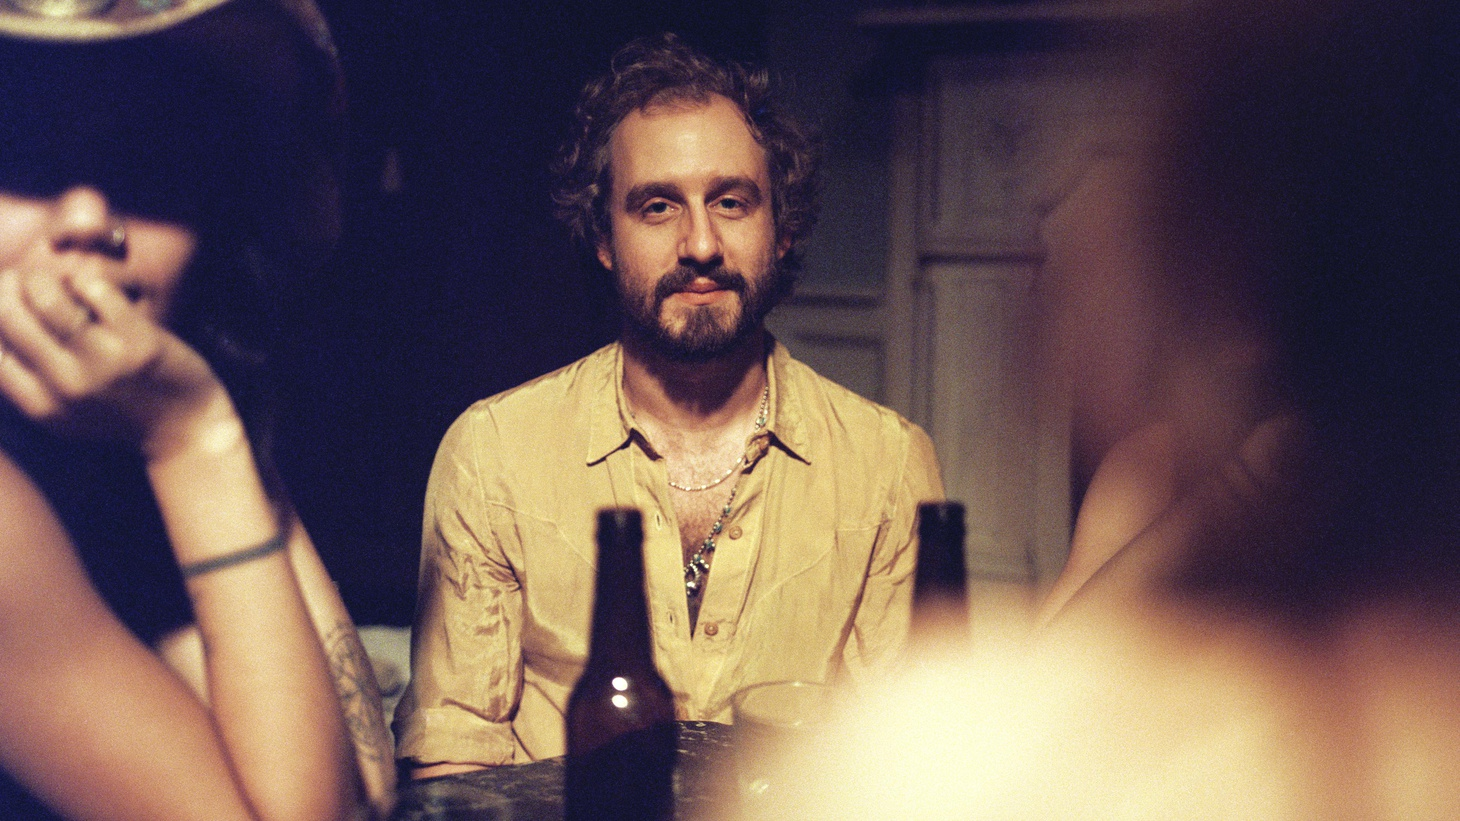 Sometimes the lowest point in a songwriter's life can be the most fertile. Case in point for Phosphorescent's front-man who delivered a tight album when times got tough.